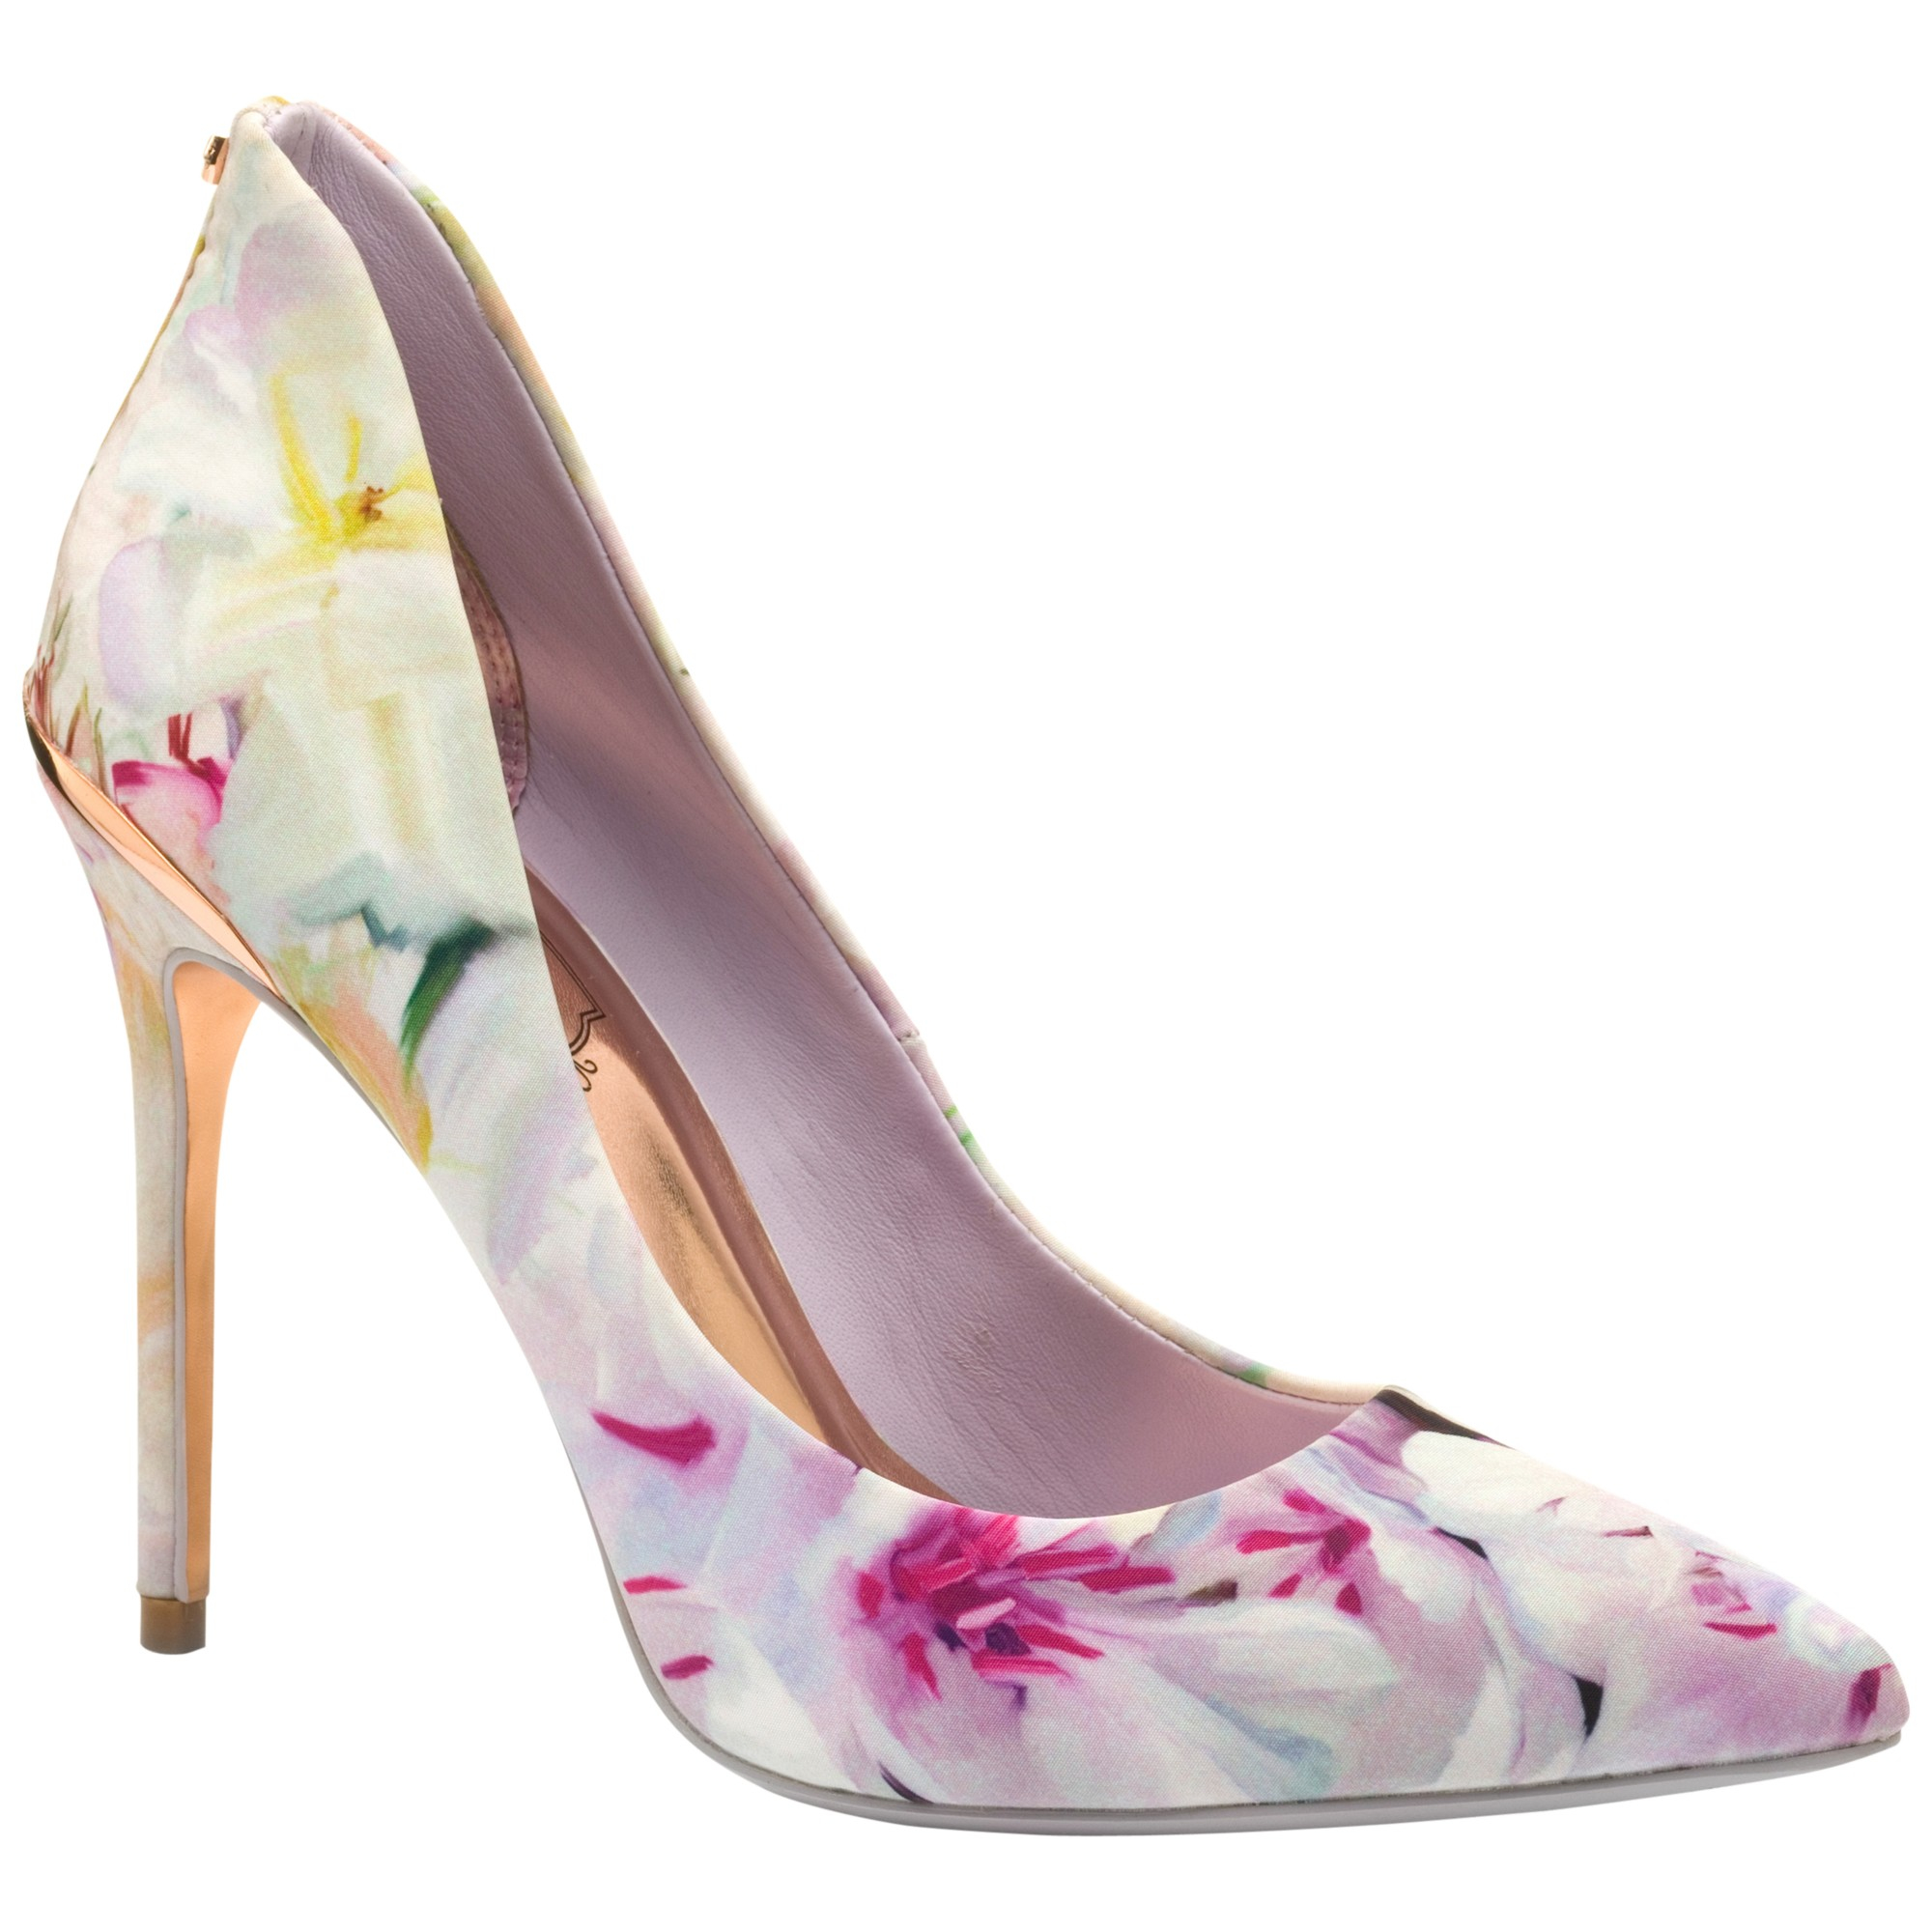 0487d9d8c1af Ted Baker Savenniers Stiletto Heeled Court Shoes in Pink - Lyst